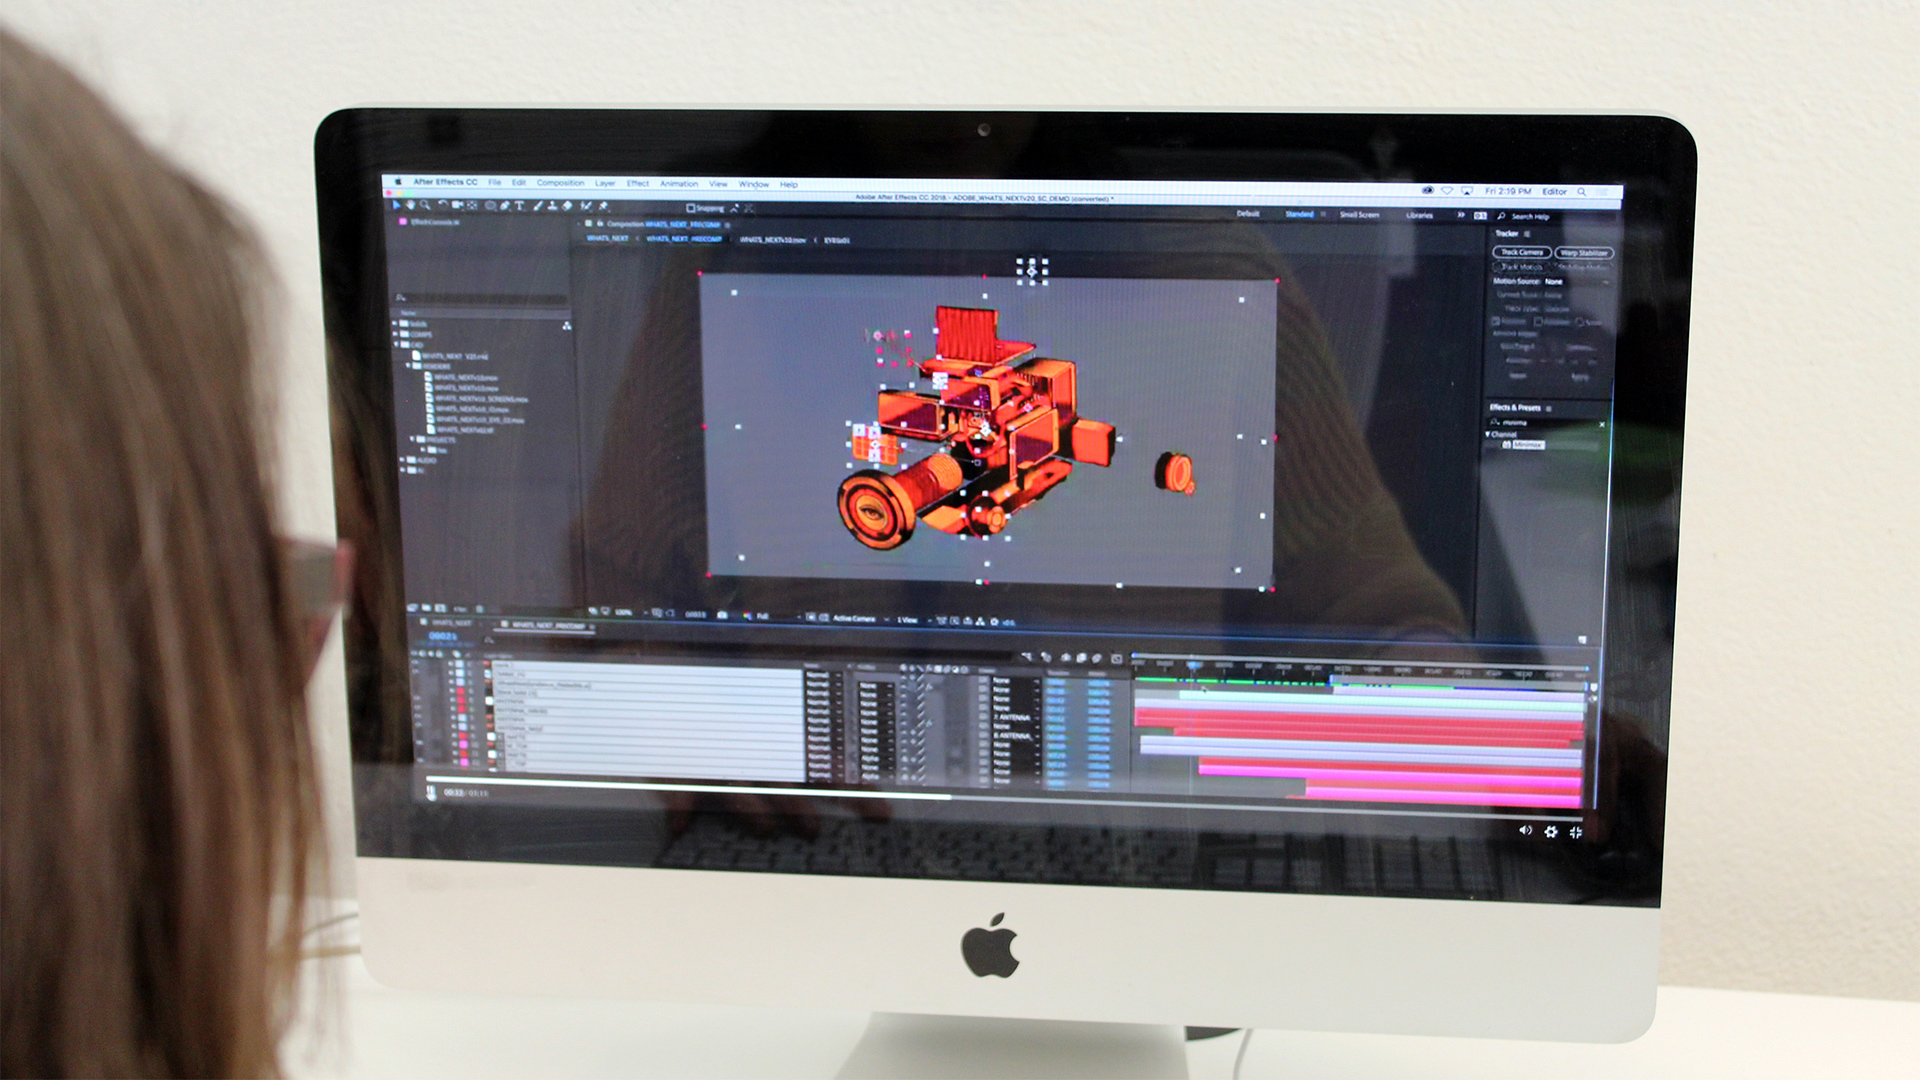 Adobe After Effects Pro CC